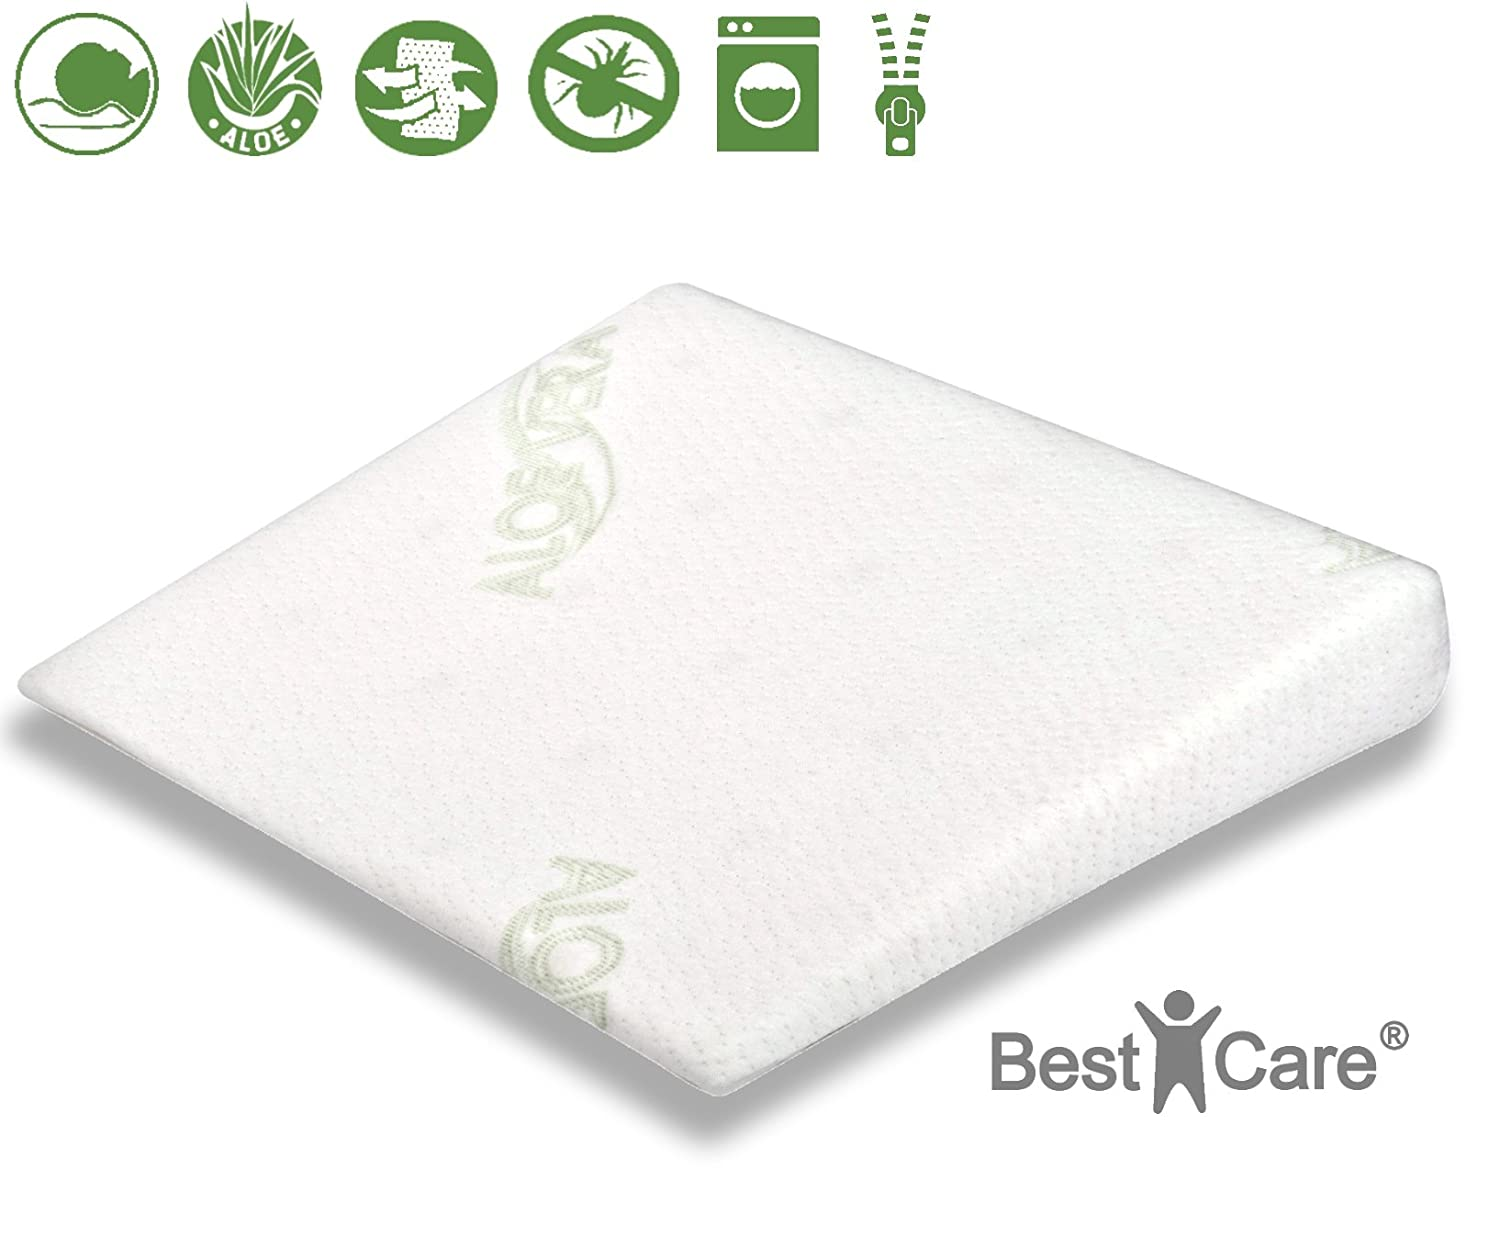 BestCare® - High quality, pressure relieving and breathable baby/children pillow, in 4 sizes, perfectly fits into nearly all Cribs, Bed side cots, Prams, Moses Baskets, many sizes available to avoid dangerous gaps + with Aloe Vera cover for sensitive skin